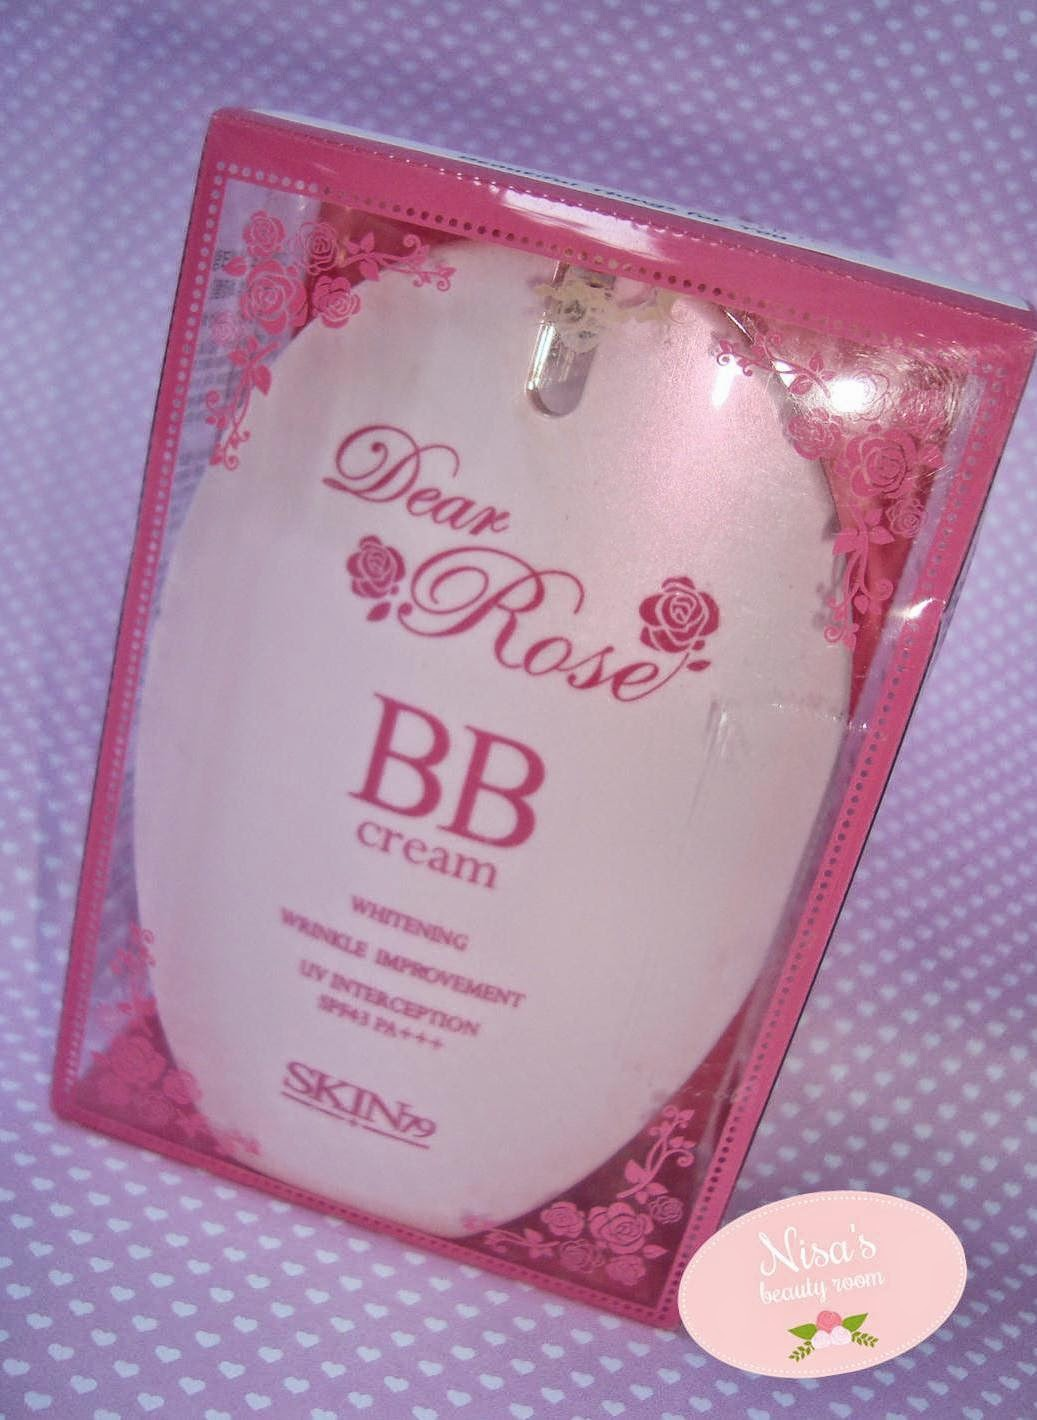 Review Skin 79 Dear Rose BB Cream